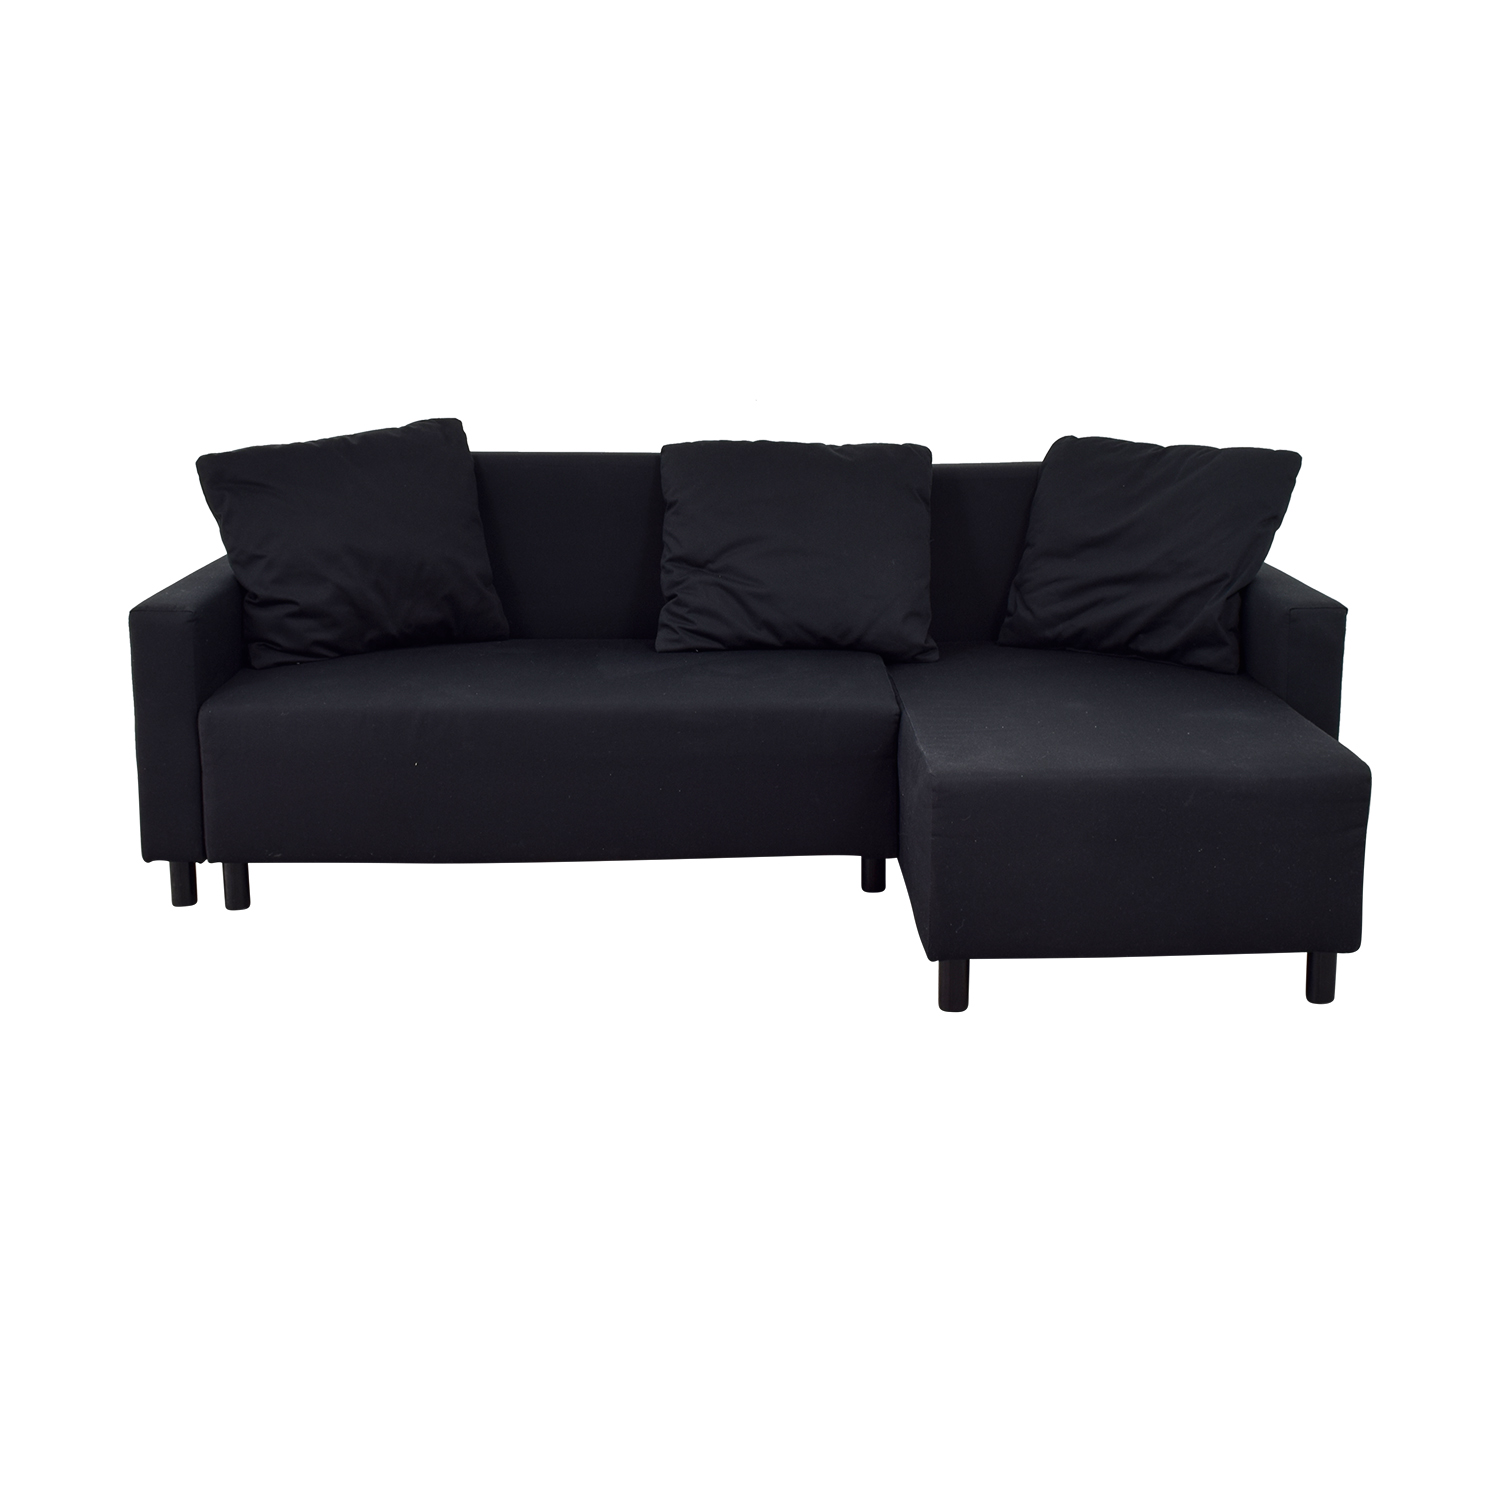 31 Off Ikea Ikea Black Sleeper Chaise Sectional With